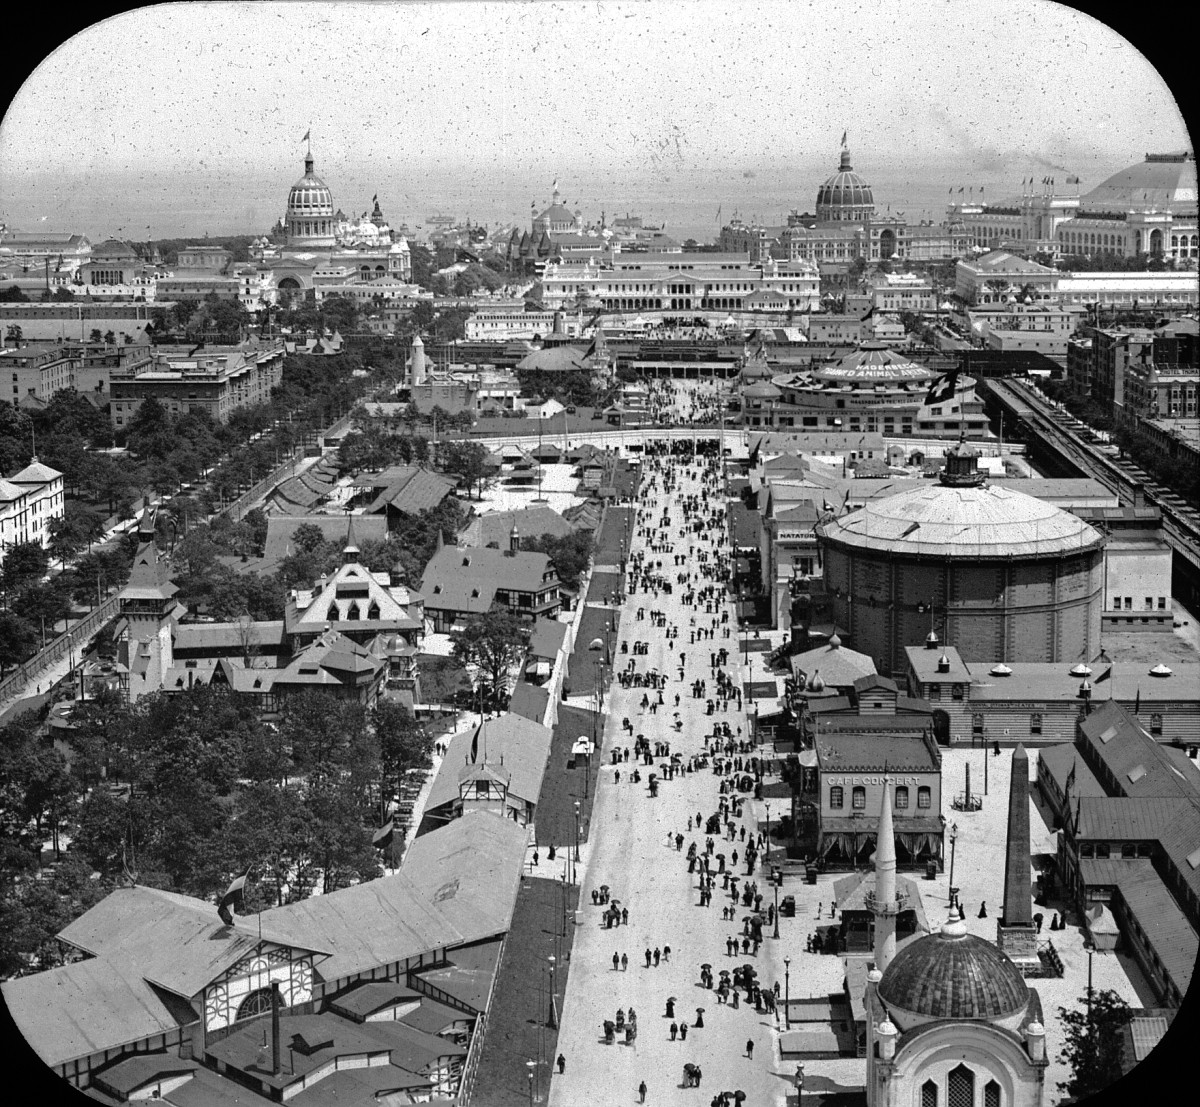 THE MIDWAY, COLUMBIAN EXPOSITION